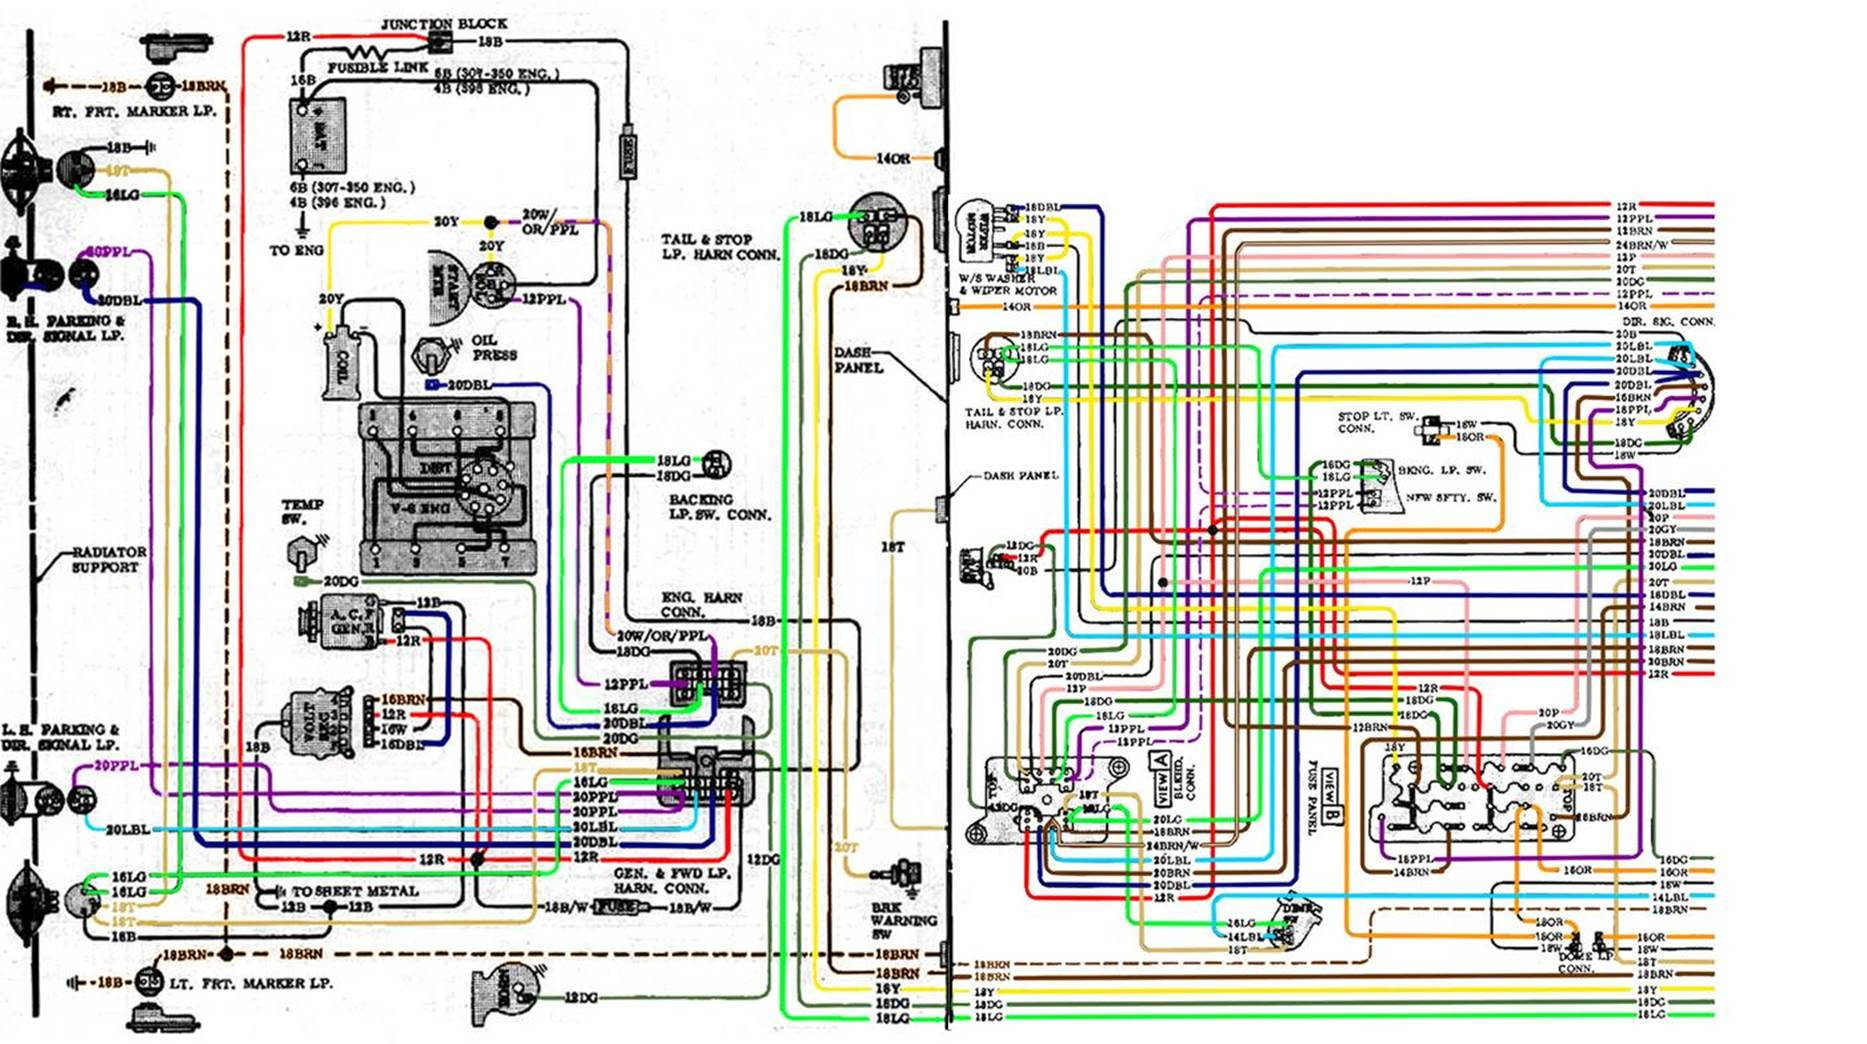 6772 Chevy Wiring Diagram – 1969 Chevelle Wiring Diagram